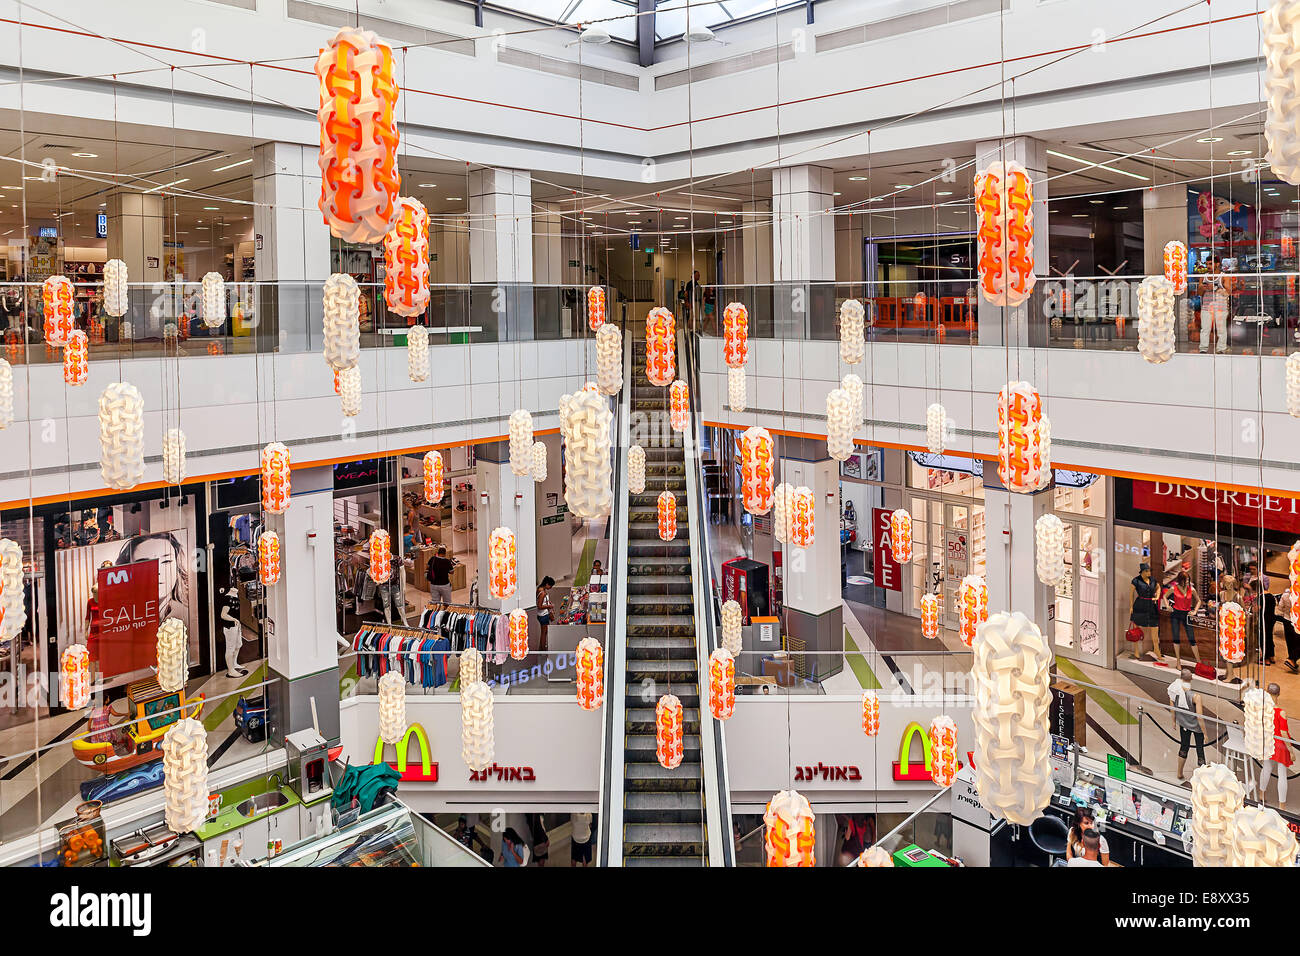 Shopping mall interior view in Ashkelon, Israel Stock Photo